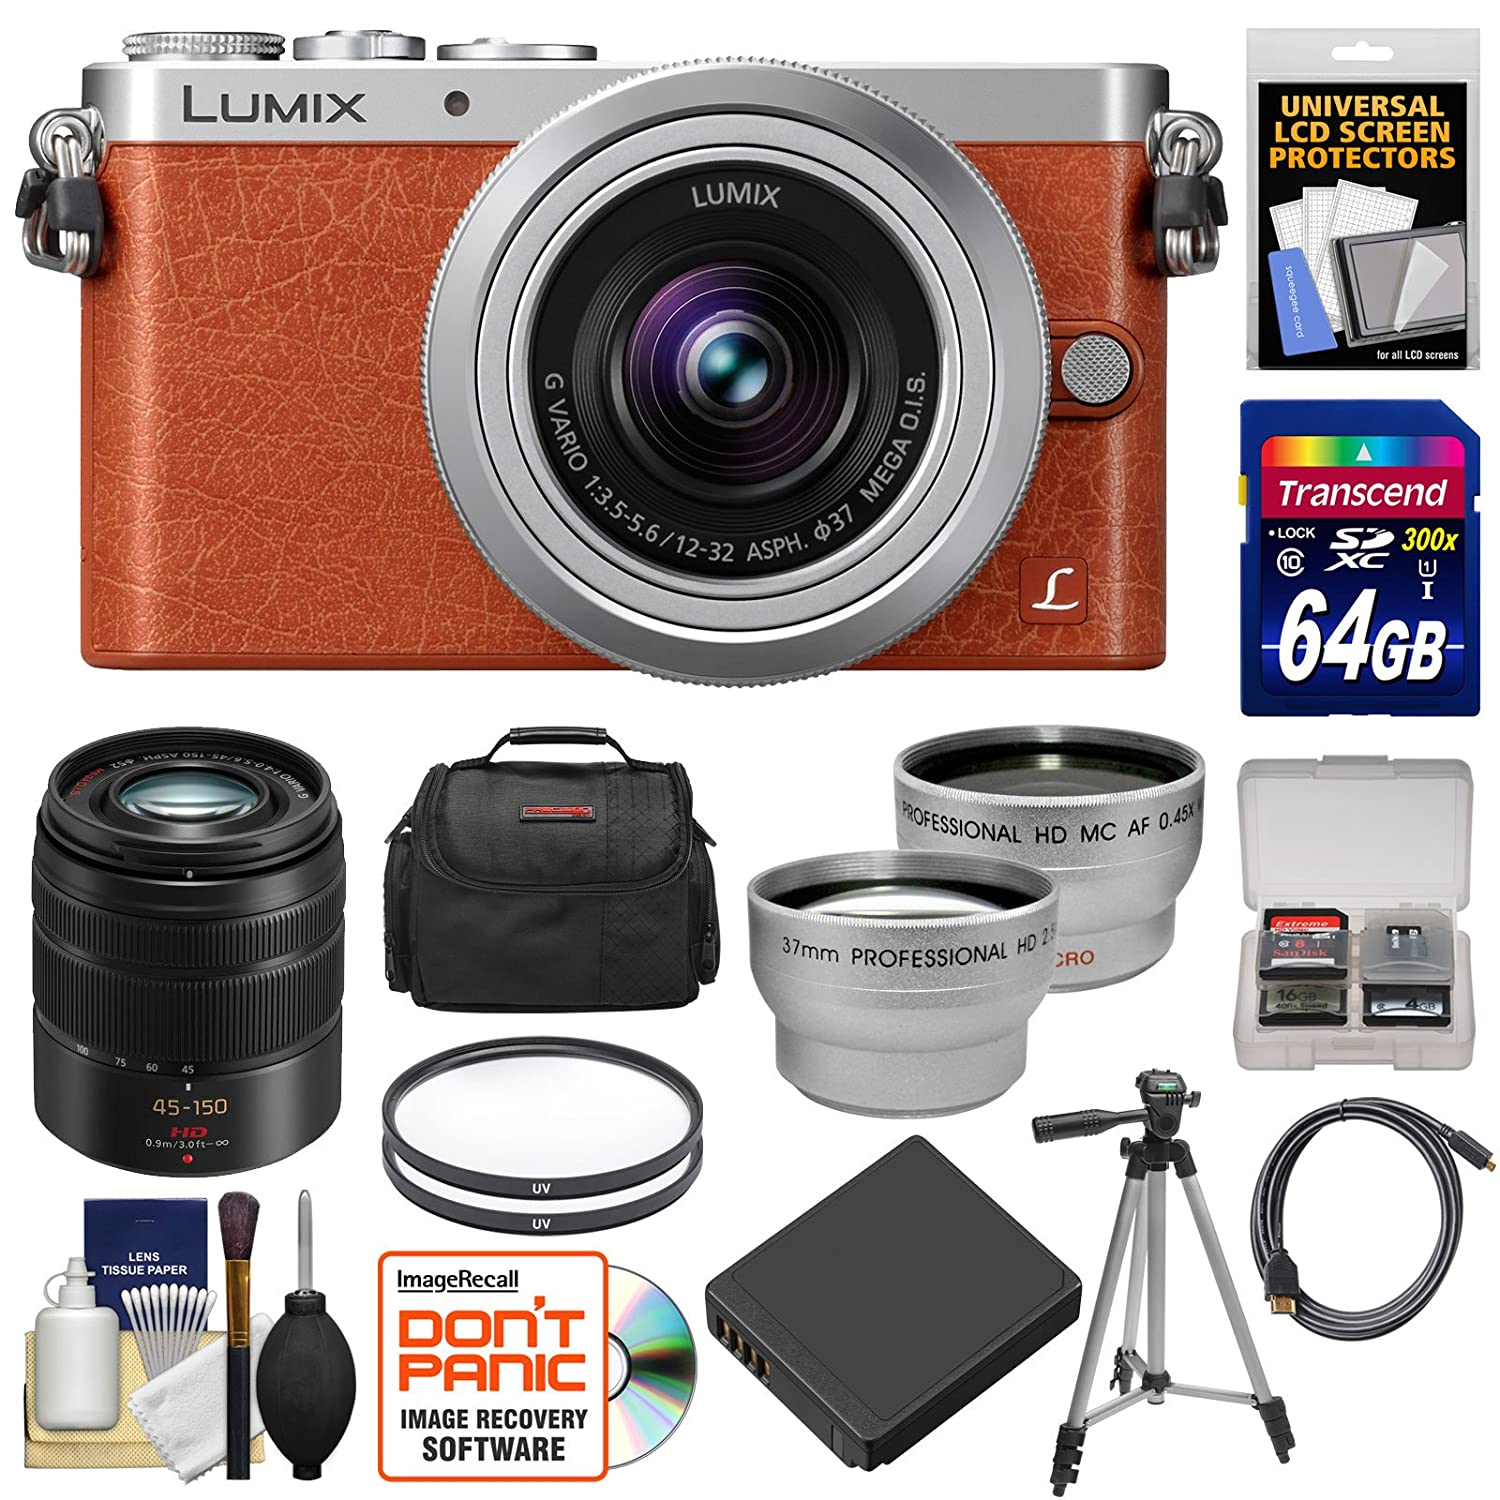 Panasonic Lumix DMC-GM1 Micro Four Thirds Digital Camera & 12-32mm Lens (Orange) with 45-150mm Lens + 64GB Card + Battery + Case + Filters + Tripod + Tele & Wide Lens Kit